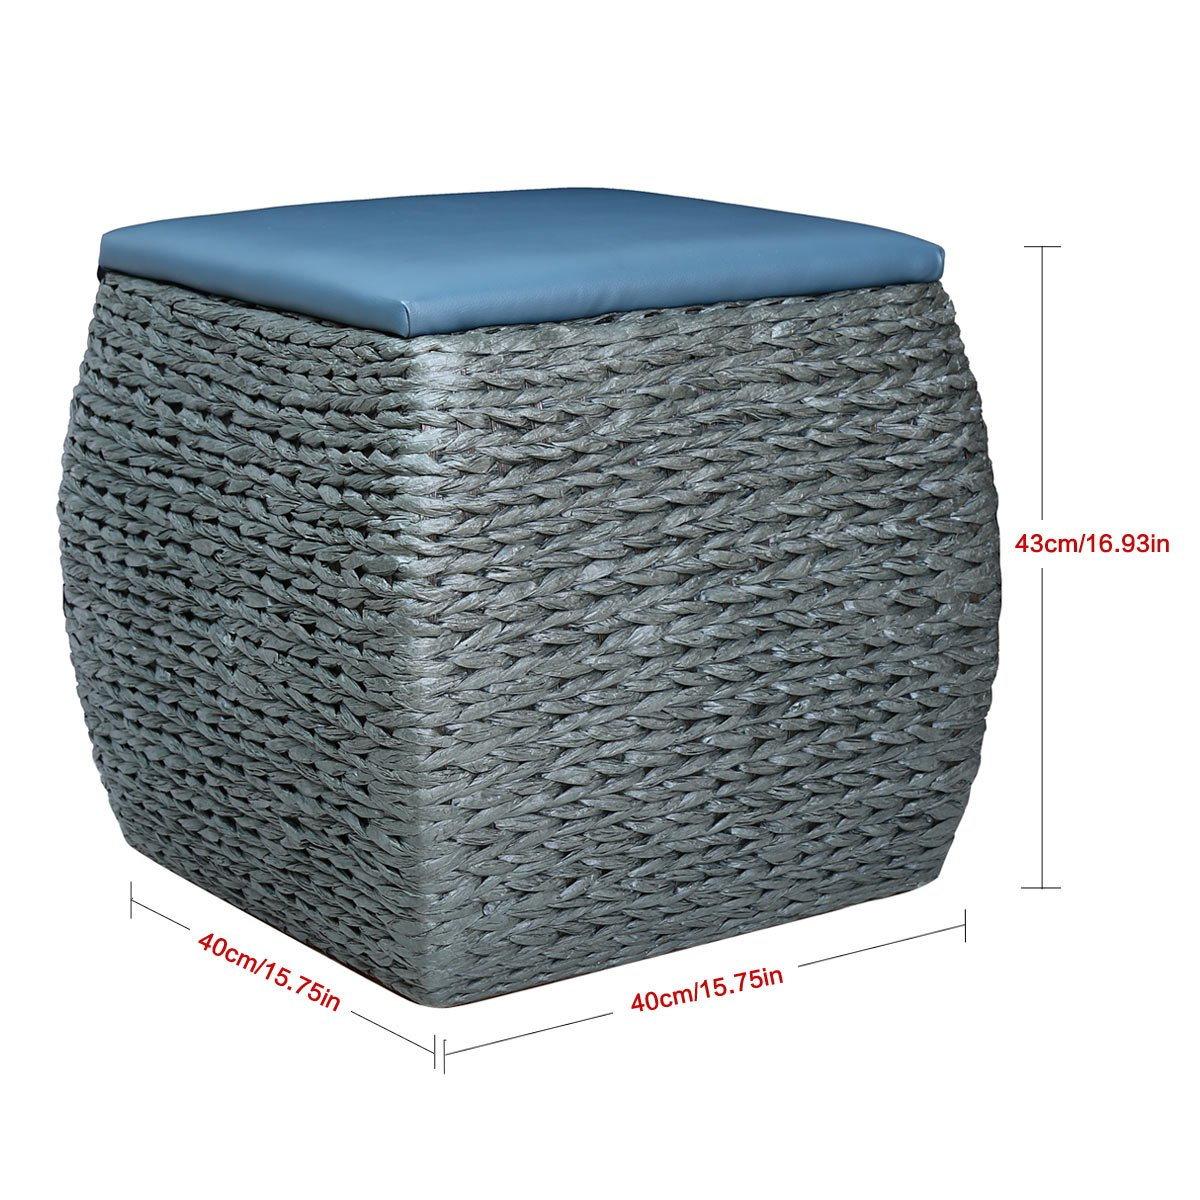 Super Eshow Wood Woven Seagrass Storage Stool Leather Cube Ottoman Home Bench Foot Seating Handmade Silver Lamtechconsult Wood Chair Design Ideas Lamtechconsultcom